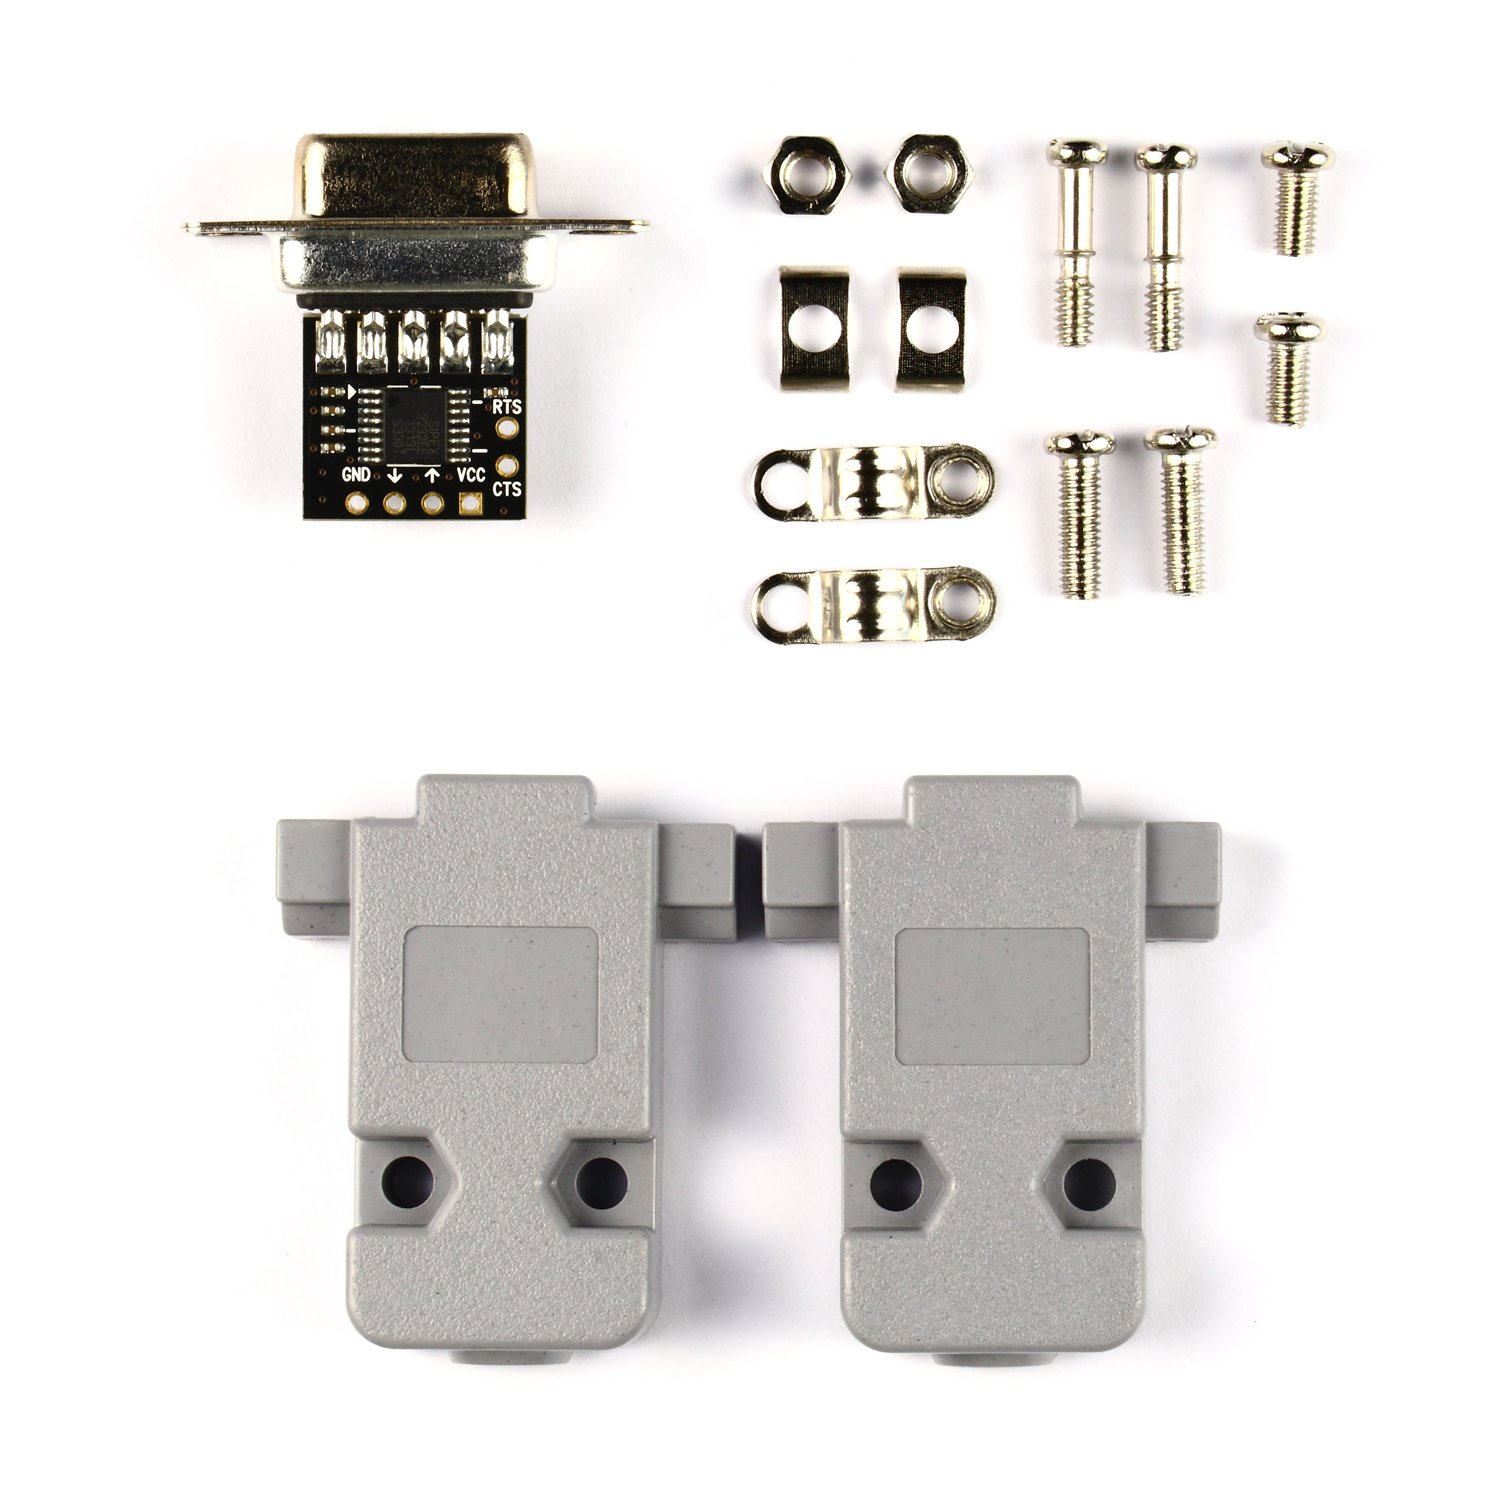 NulSom Inc. Ultra Compact RS232 to TTL Converter with Female DB9 and Hood Kit (3.3V to 5V) by NulSom Inc. (Image #2)